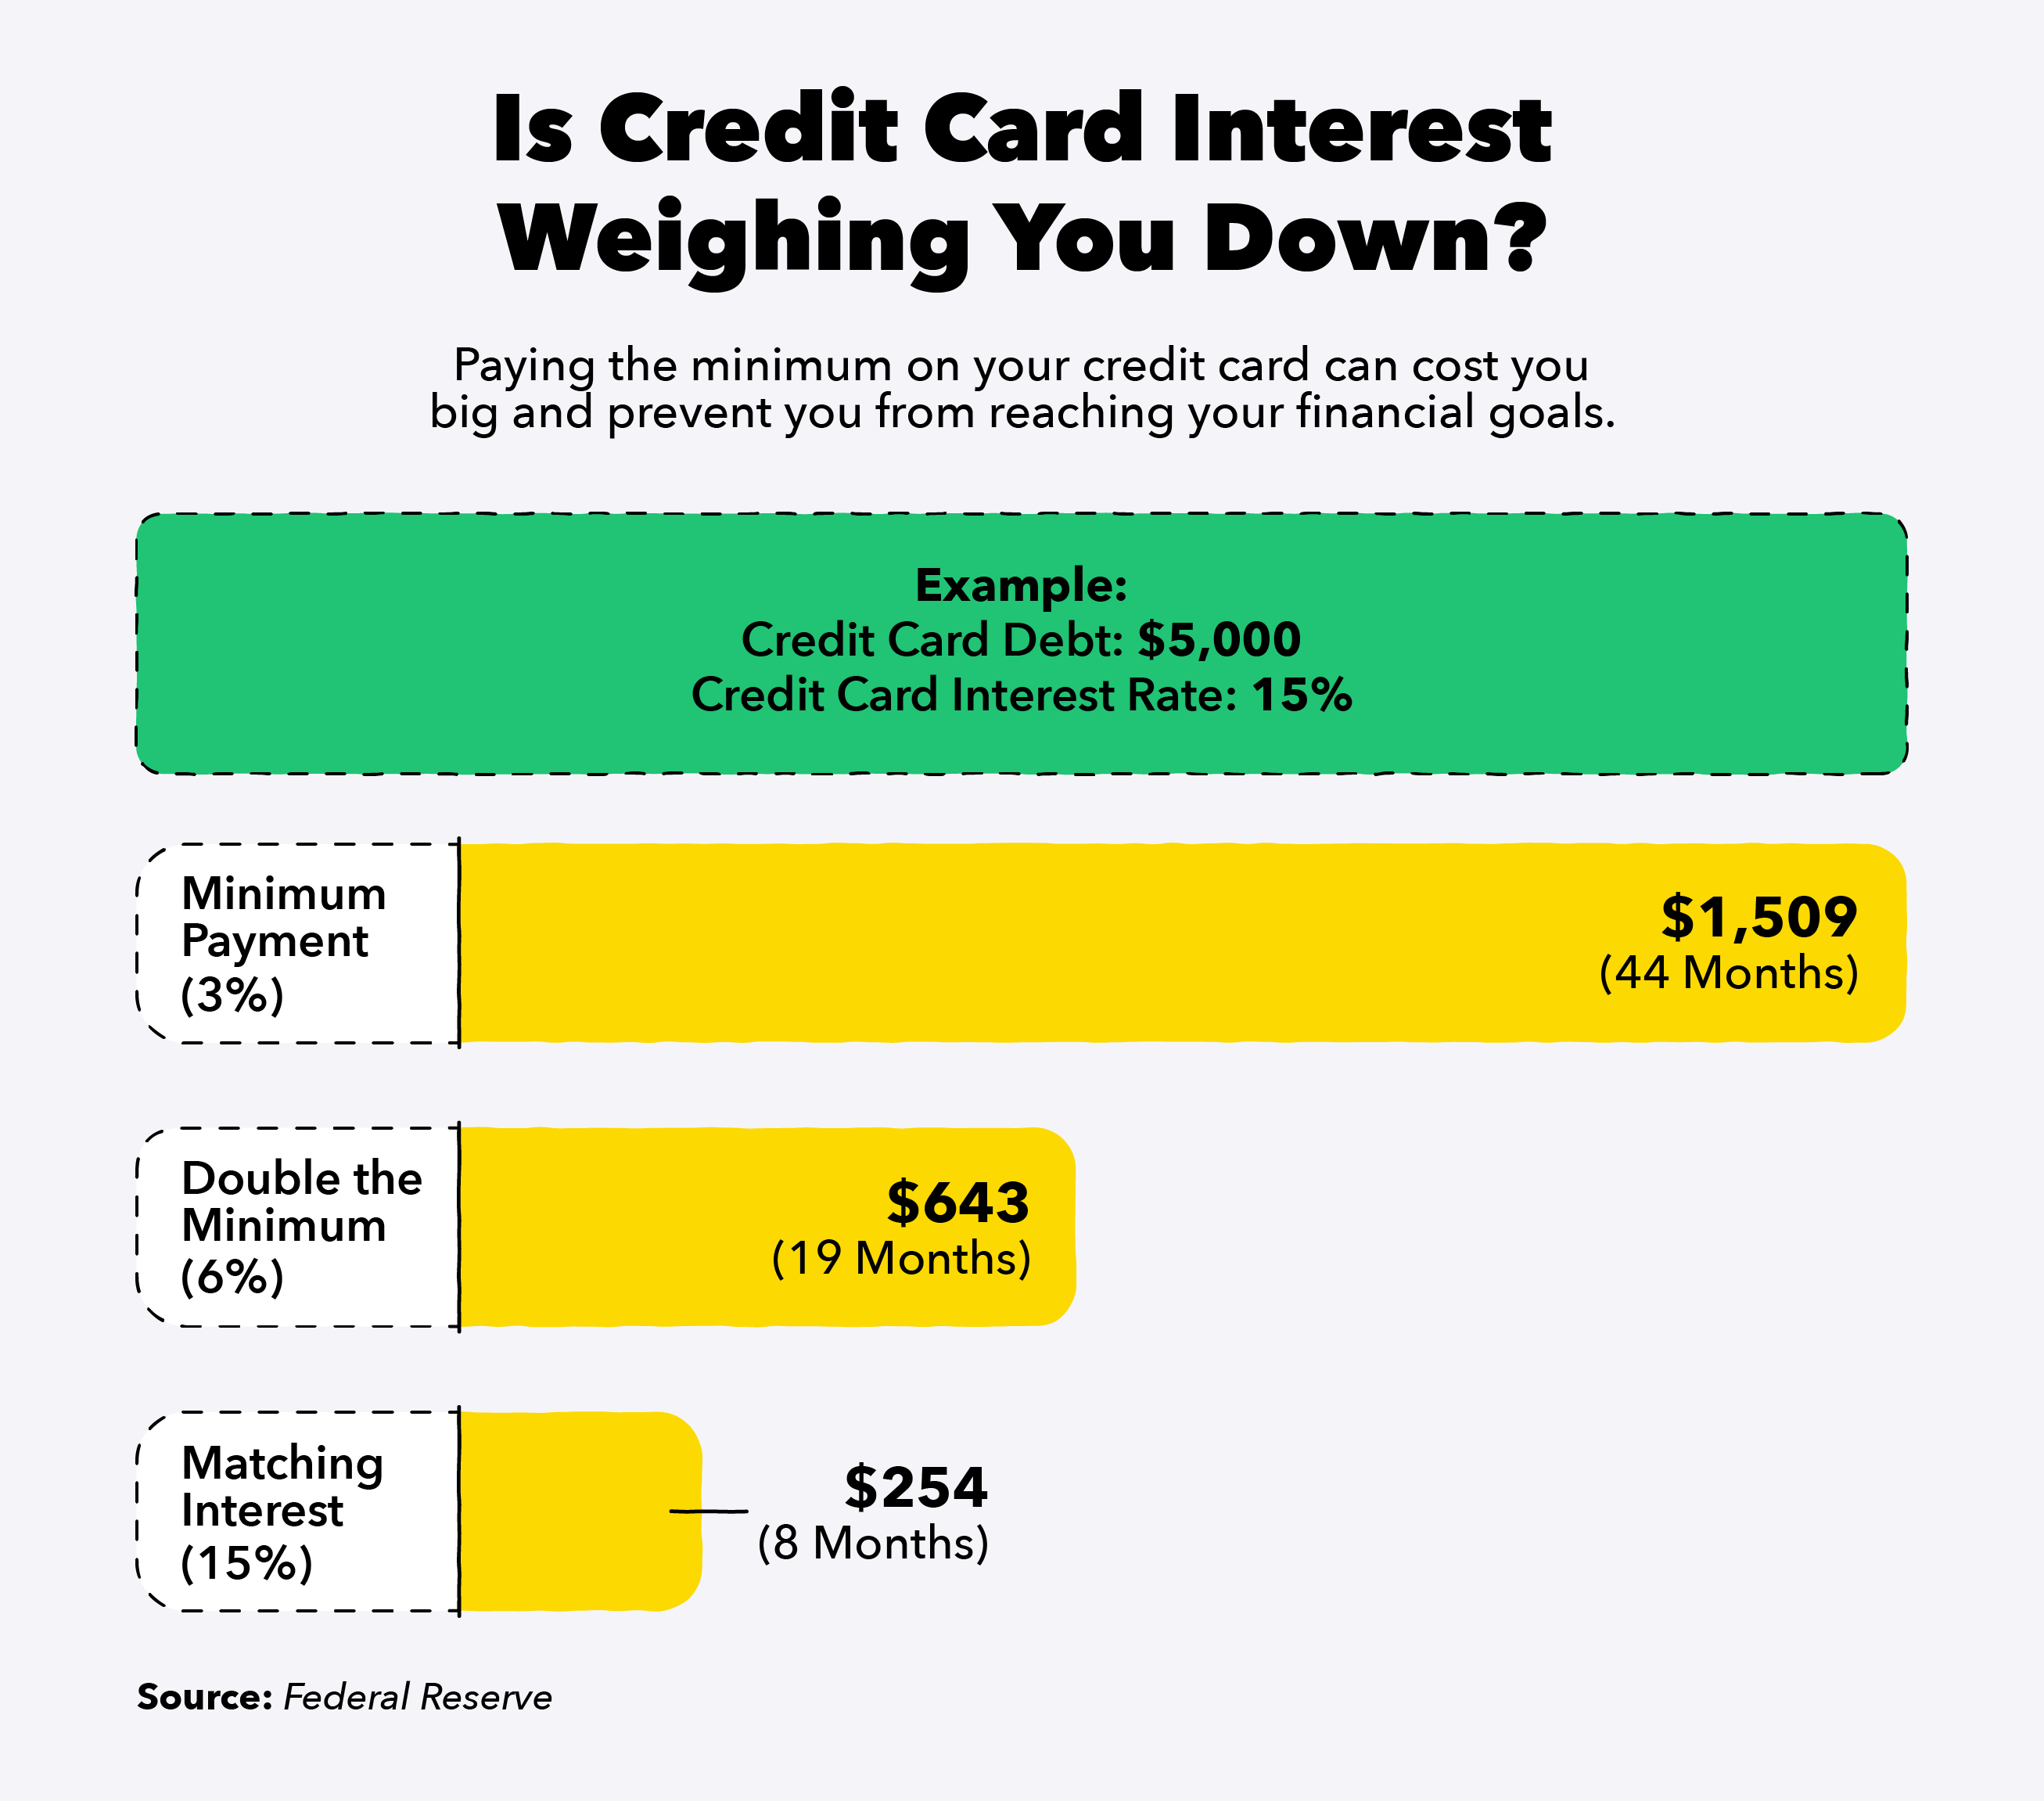 Credit card interest can delay your financial goals